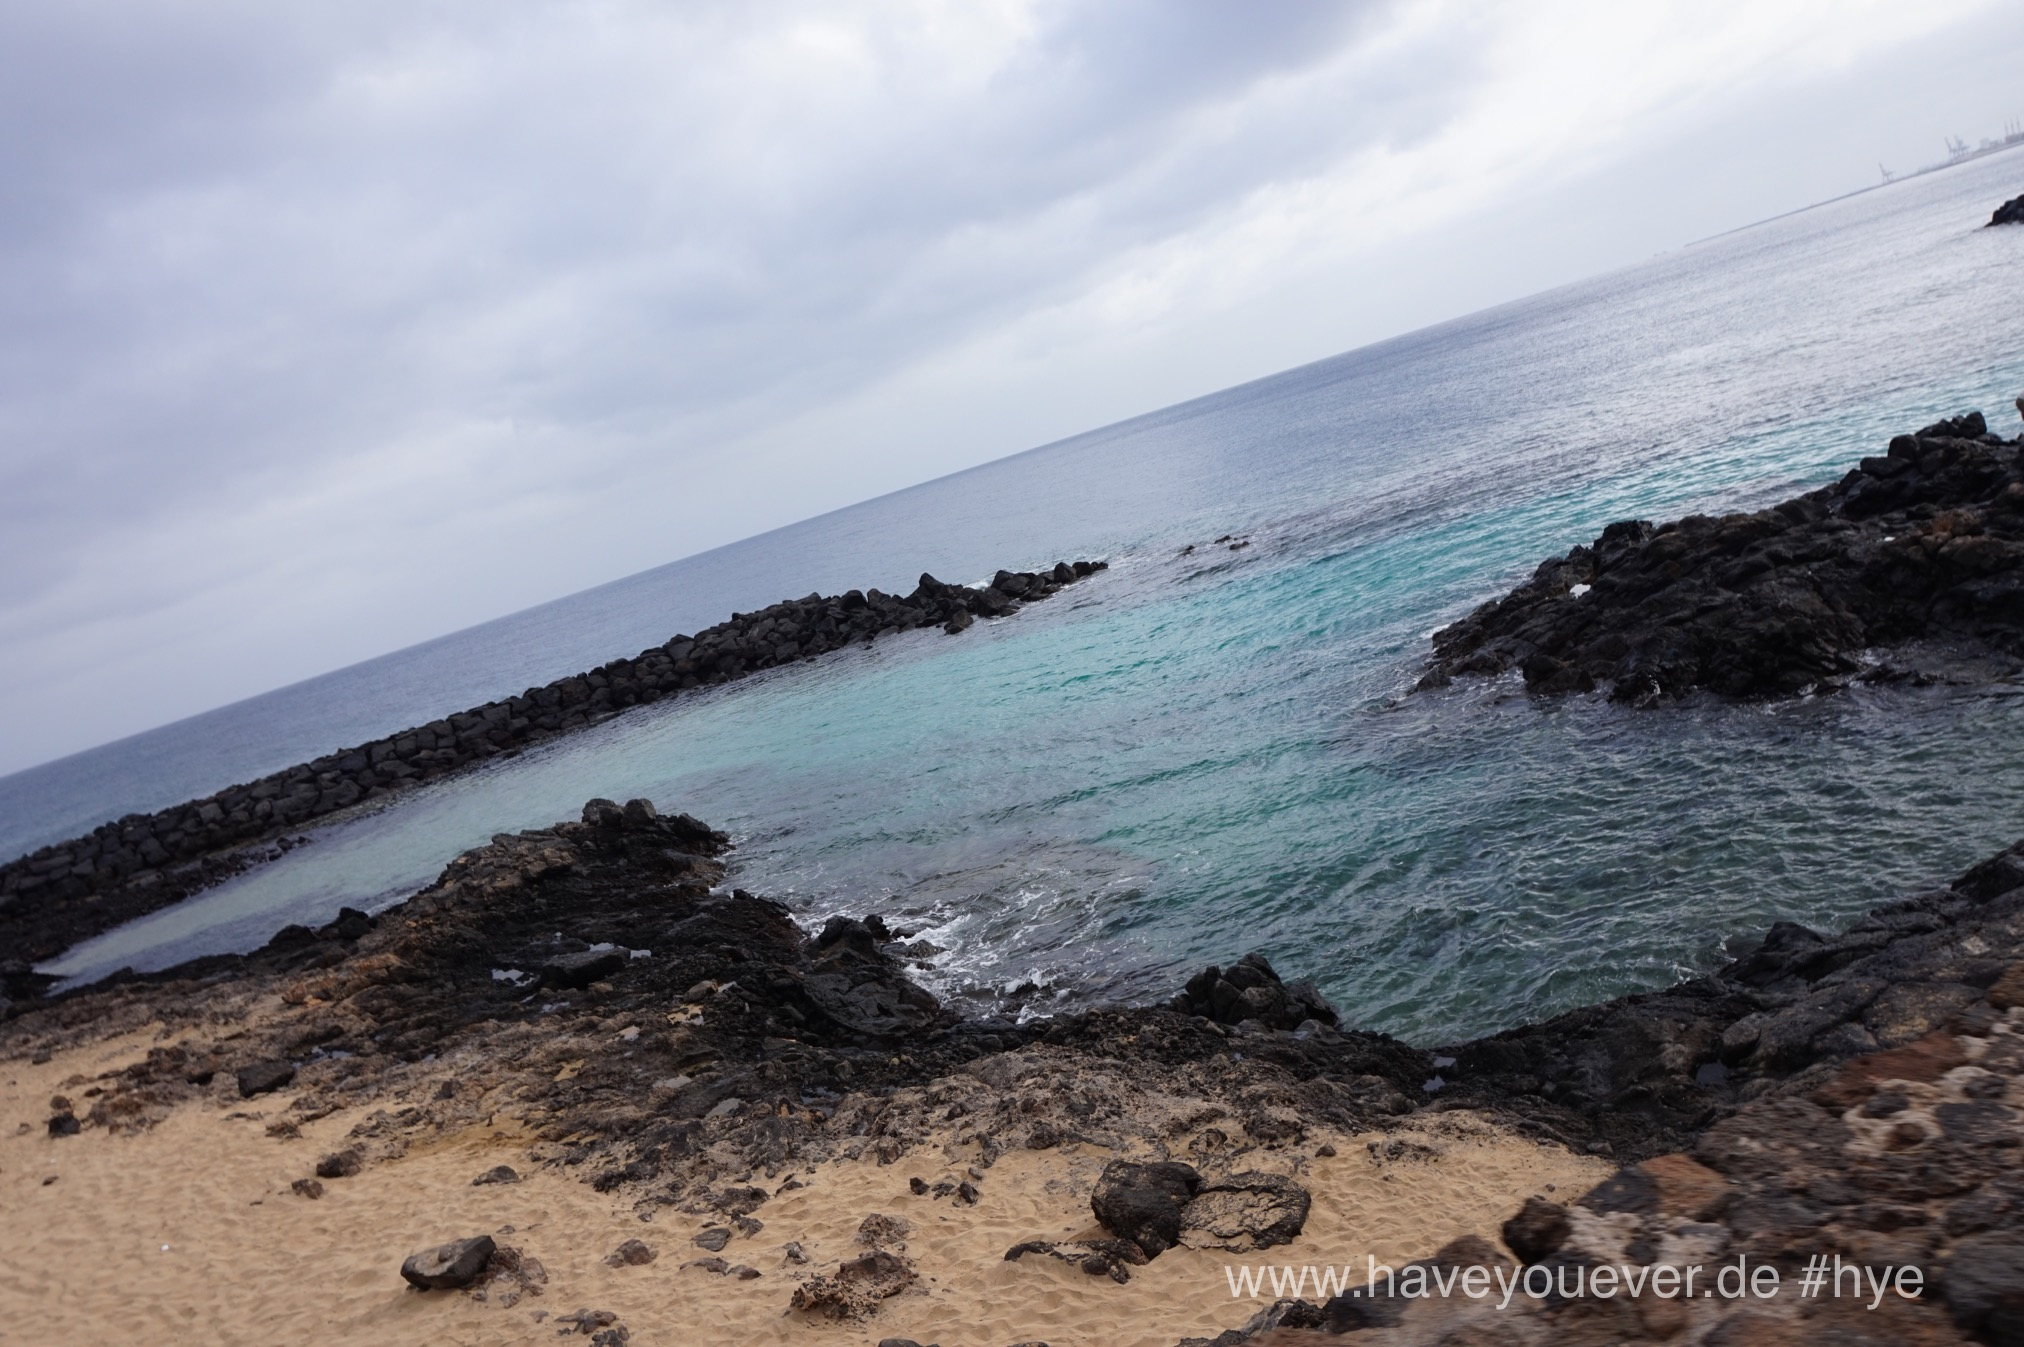 Lanzarote, Travel, Tourist, Club La Santa, Travelblog, Costa Teguise